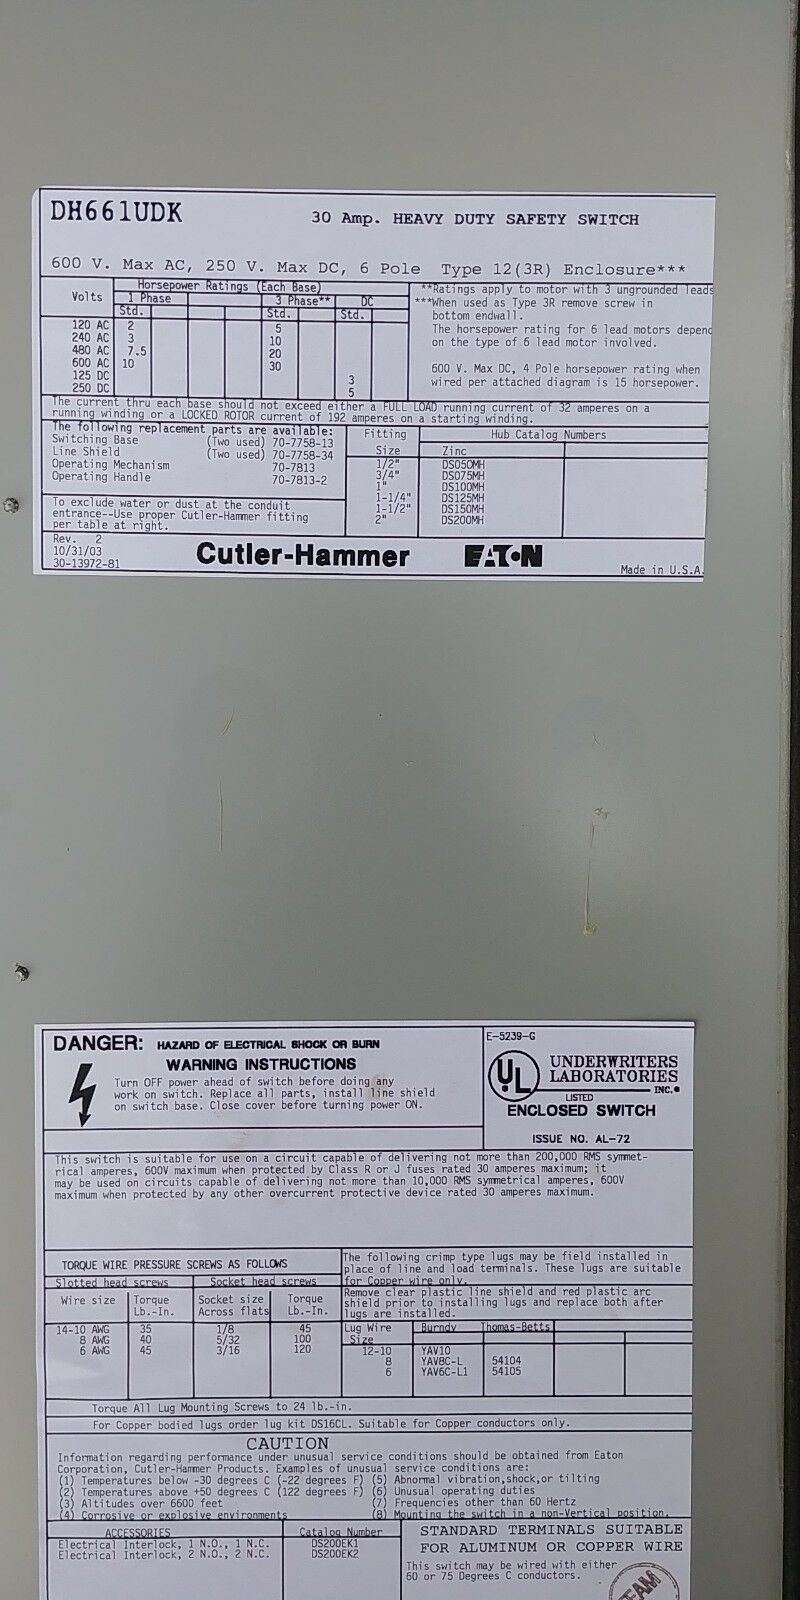 Cutler Hammer Dh661udk 30 Amp 6 Pole Safety Switch Type 3r 12 Ebay Series Parallel Heavy Duty 8 Terminal